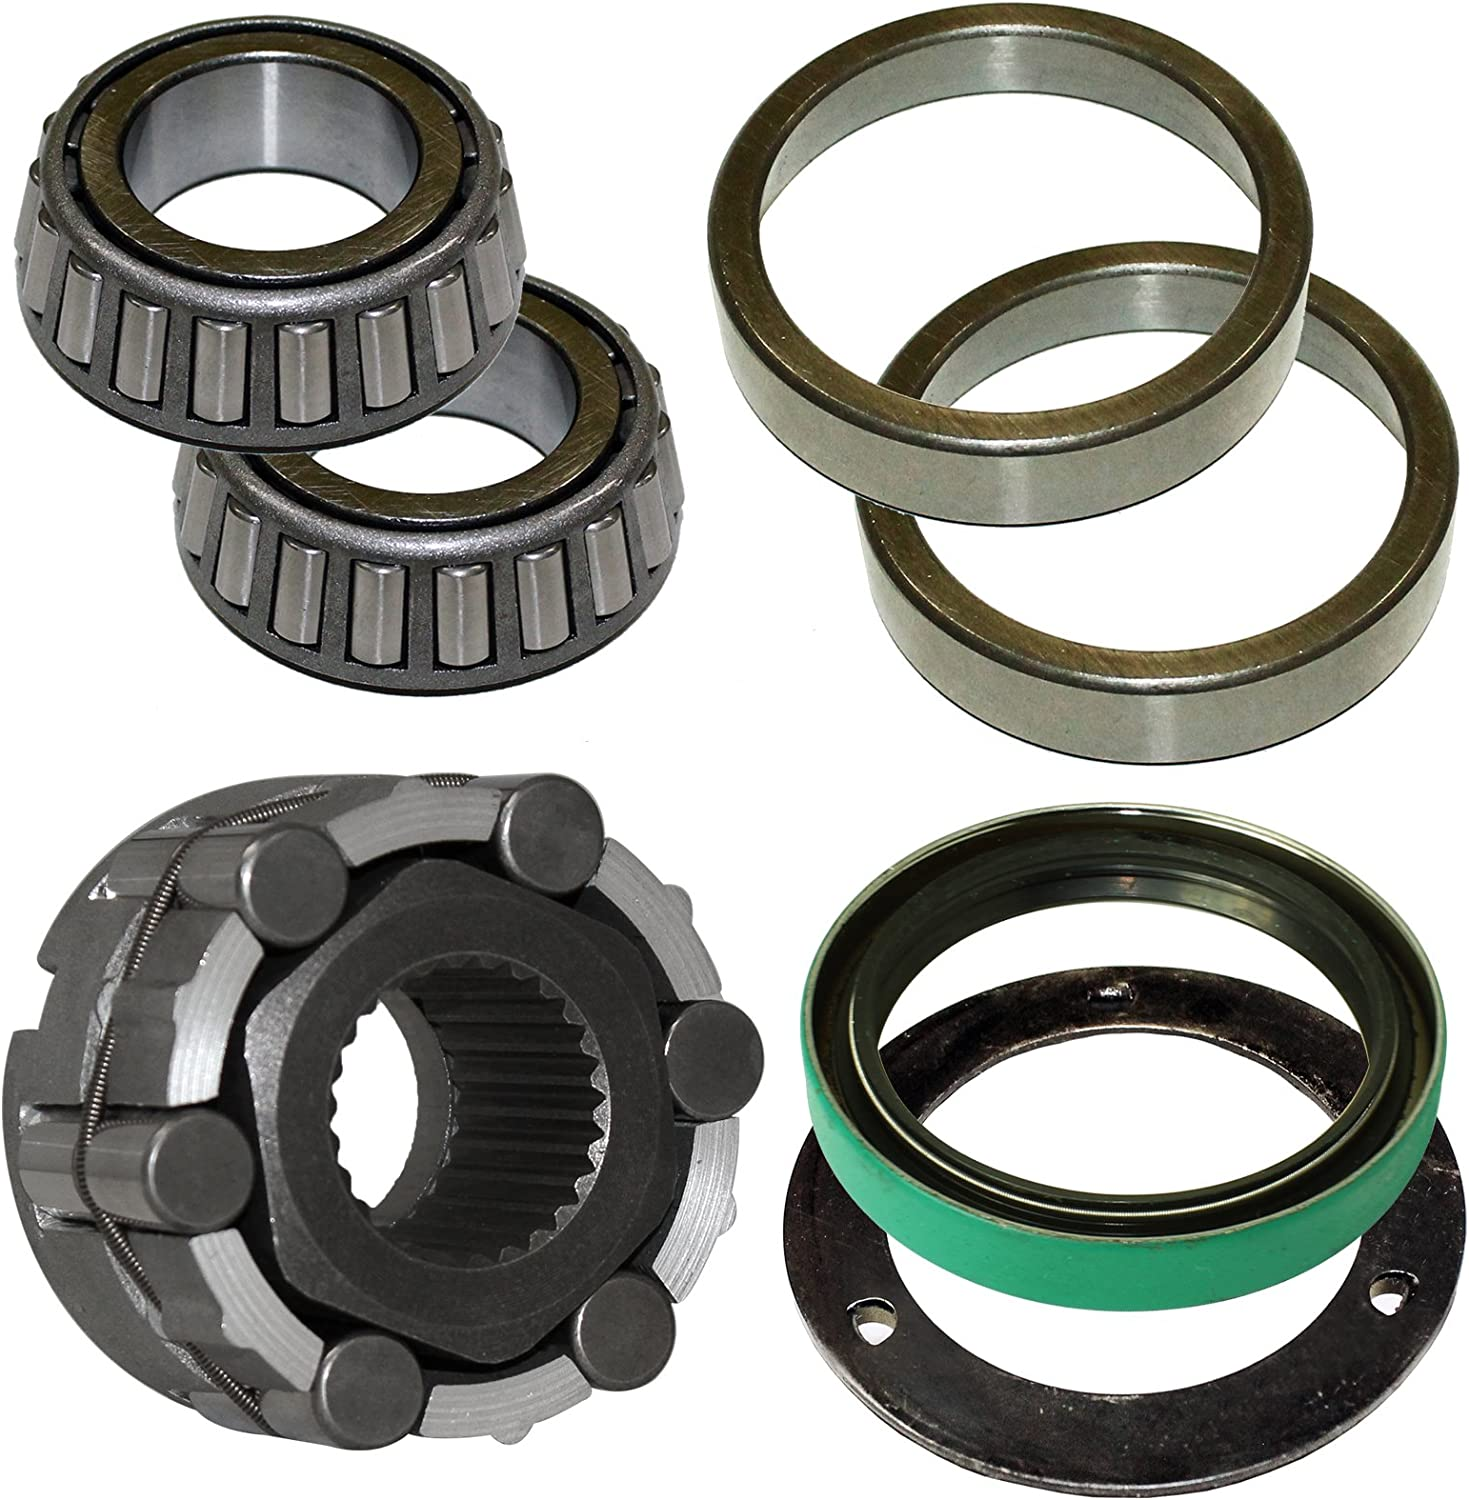 Polaris Sportsman 500 4x4 Duse 2001-2002 Both Front Wheel Bearings And Seals